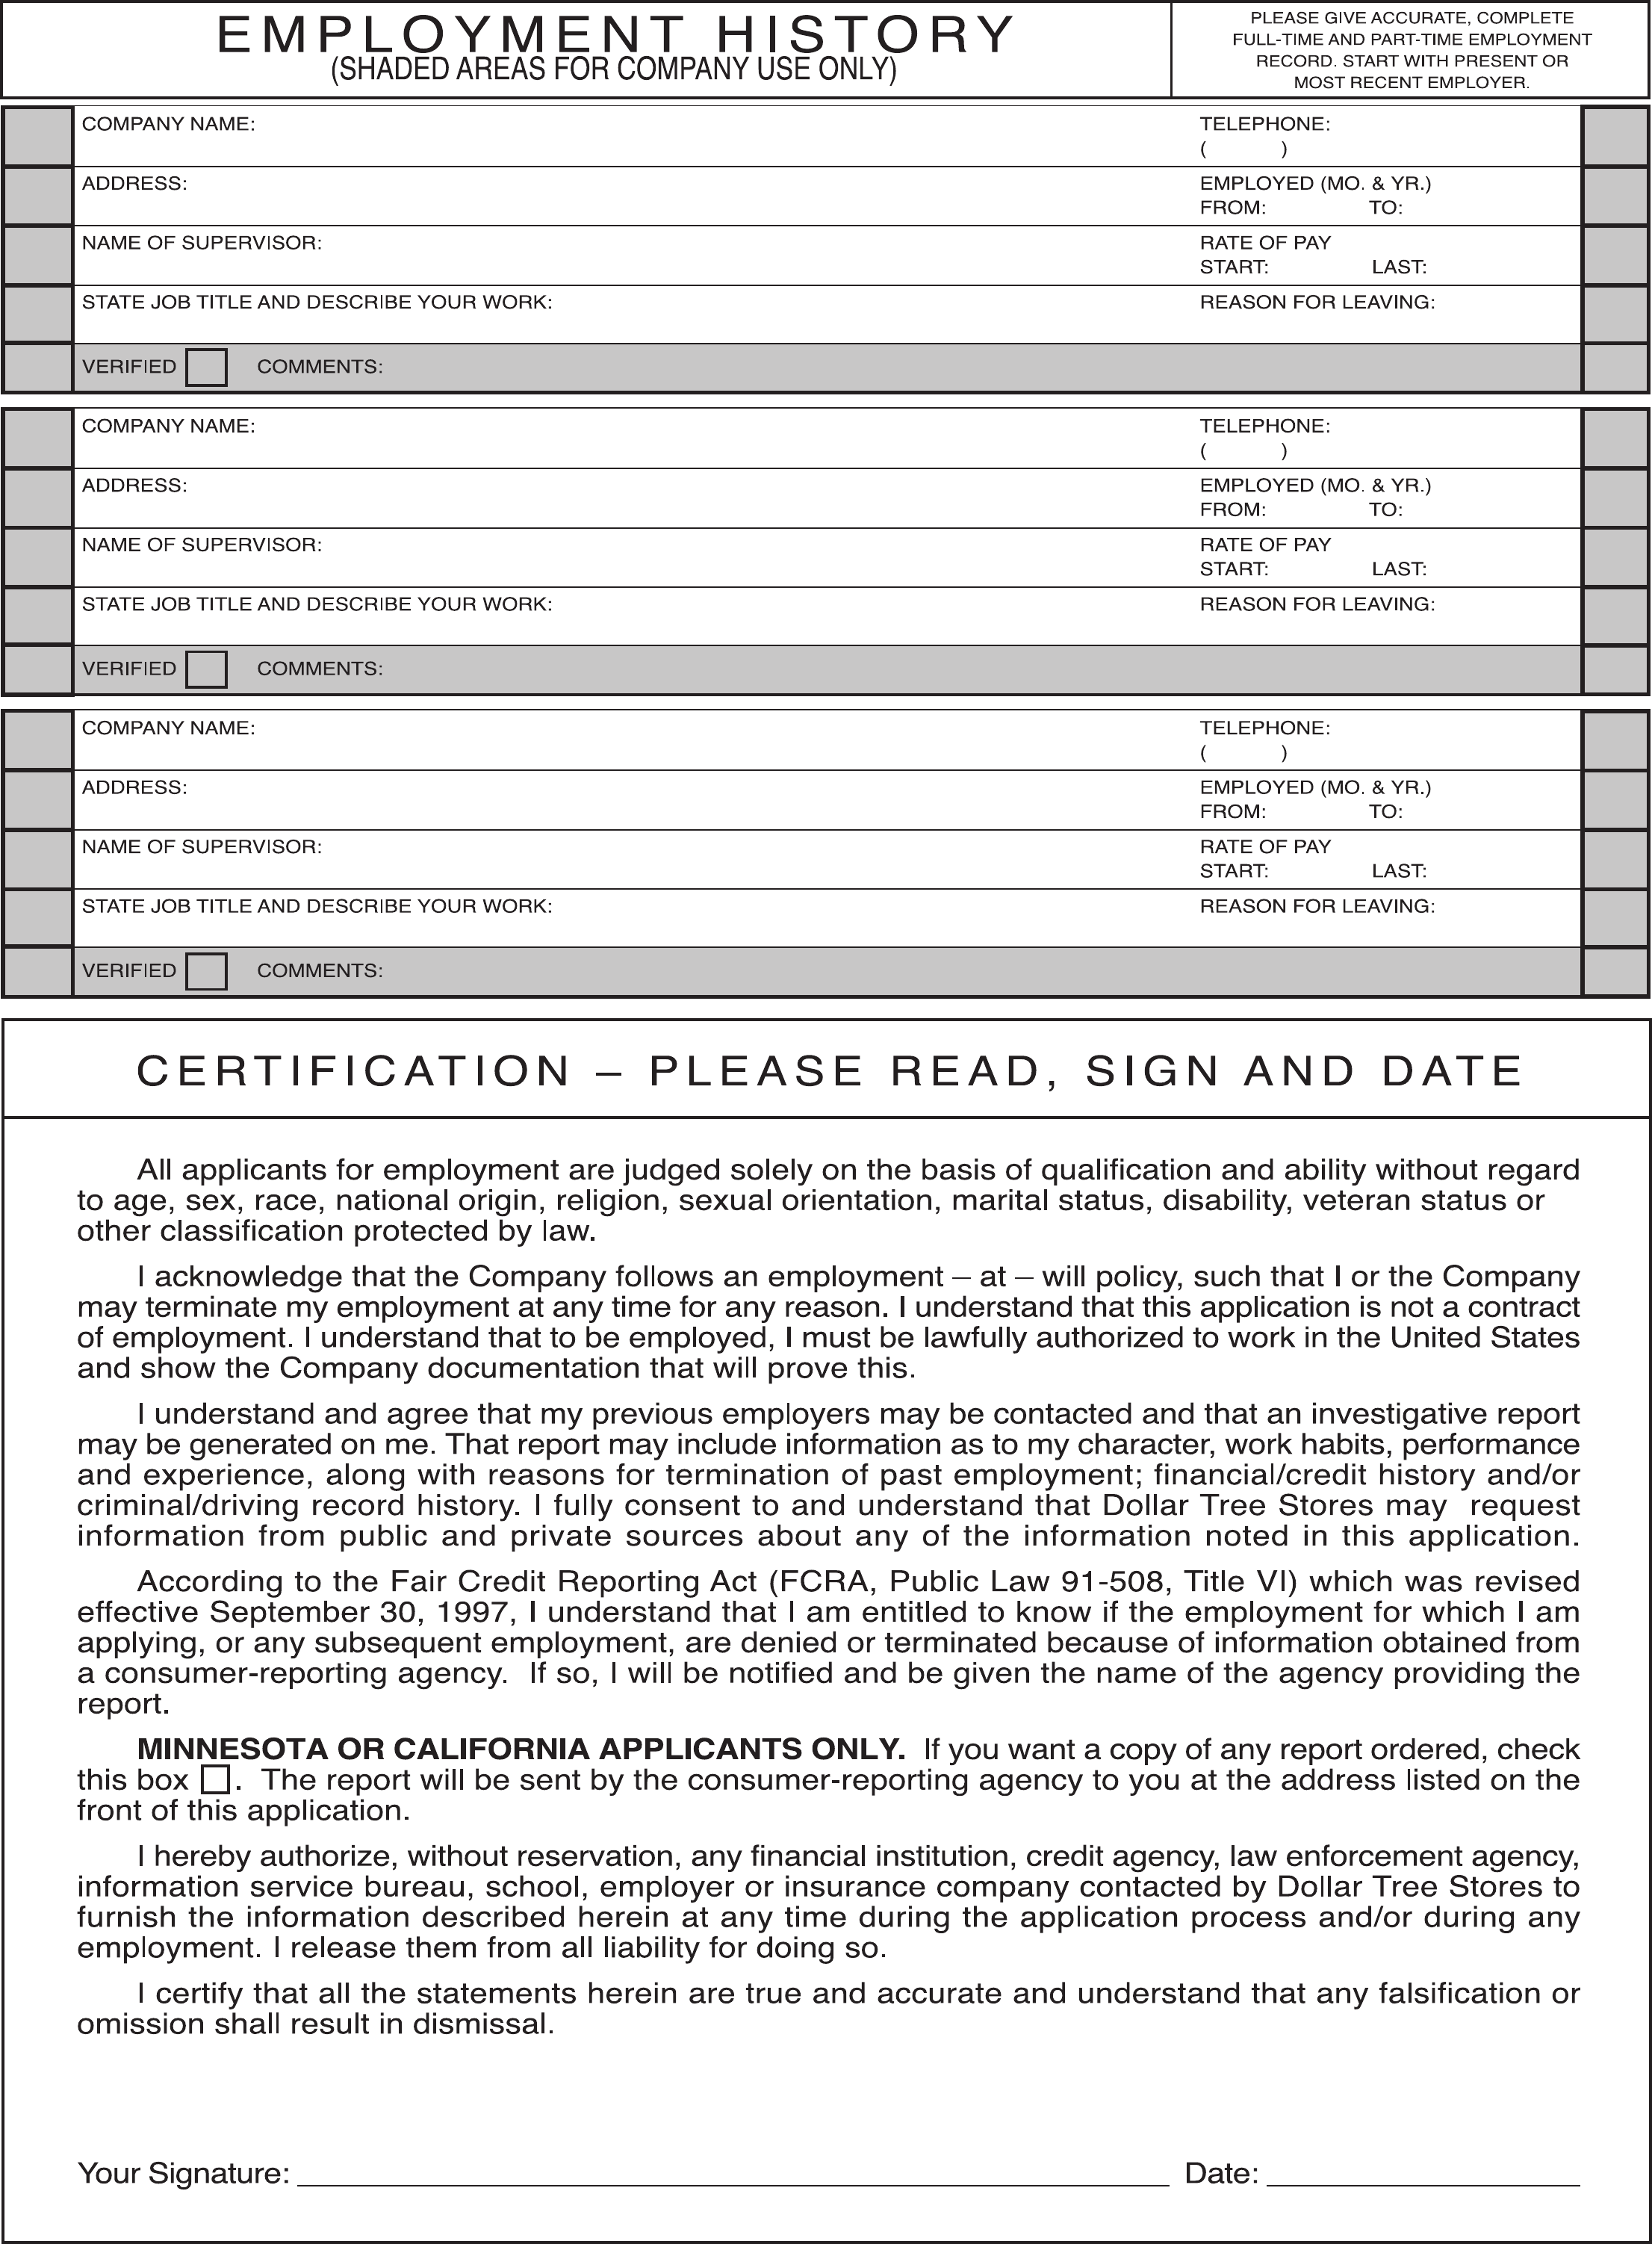 bg2 Job Application Form Template Pdf on free print, sweet frog, letter format sample, printable colorado, printable construction, letters examples, hobby lobby printable, ironworker printable,